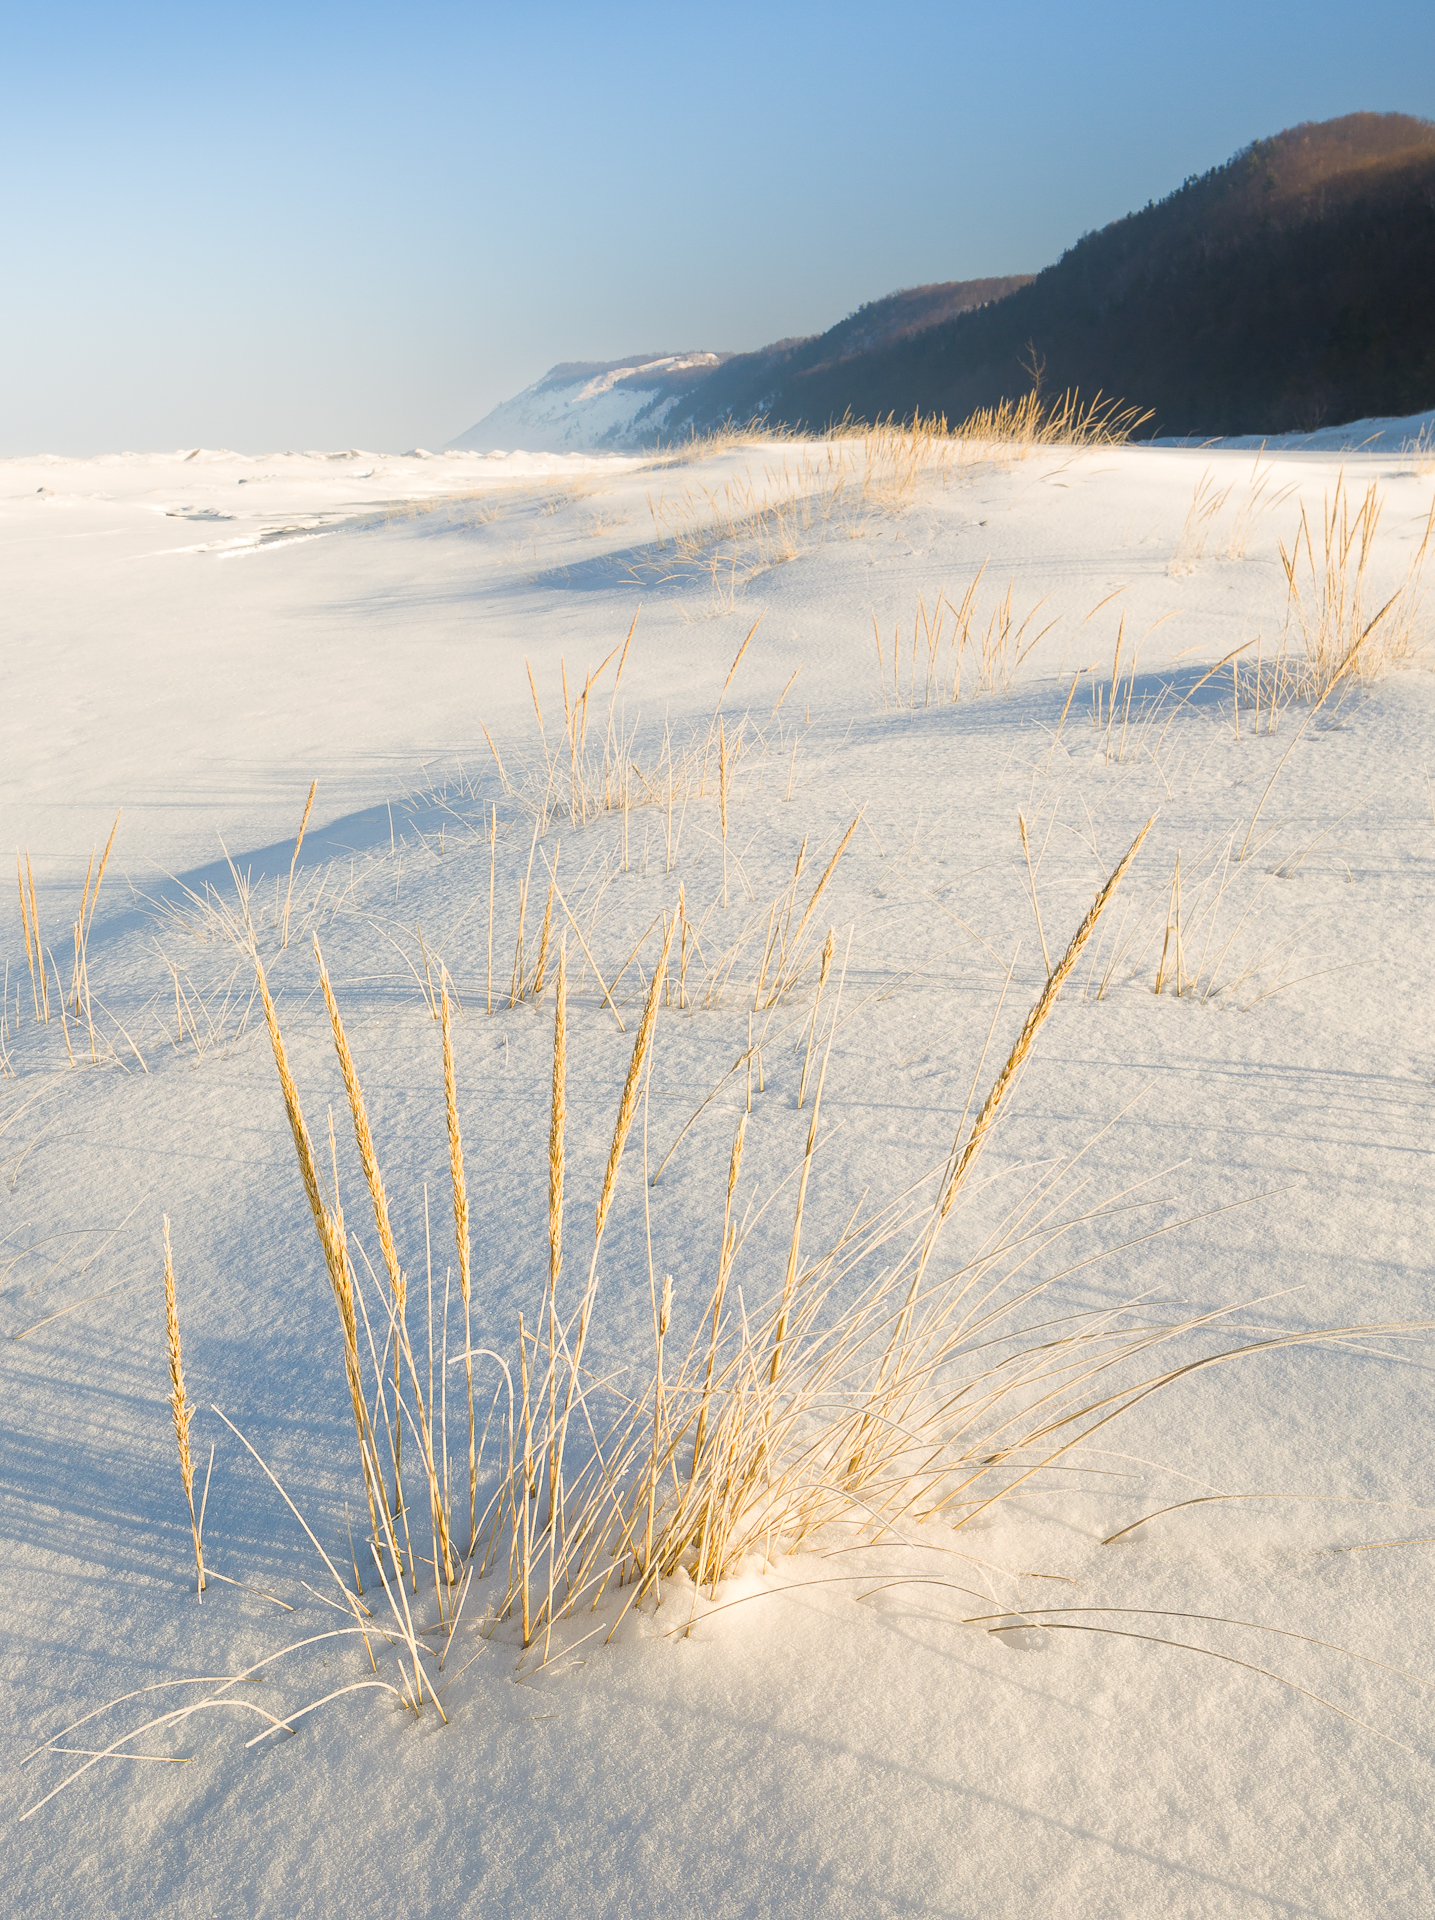 Ice, snow, cold, and a frozen lake michigan are just some of the potential dangers in this landscape.